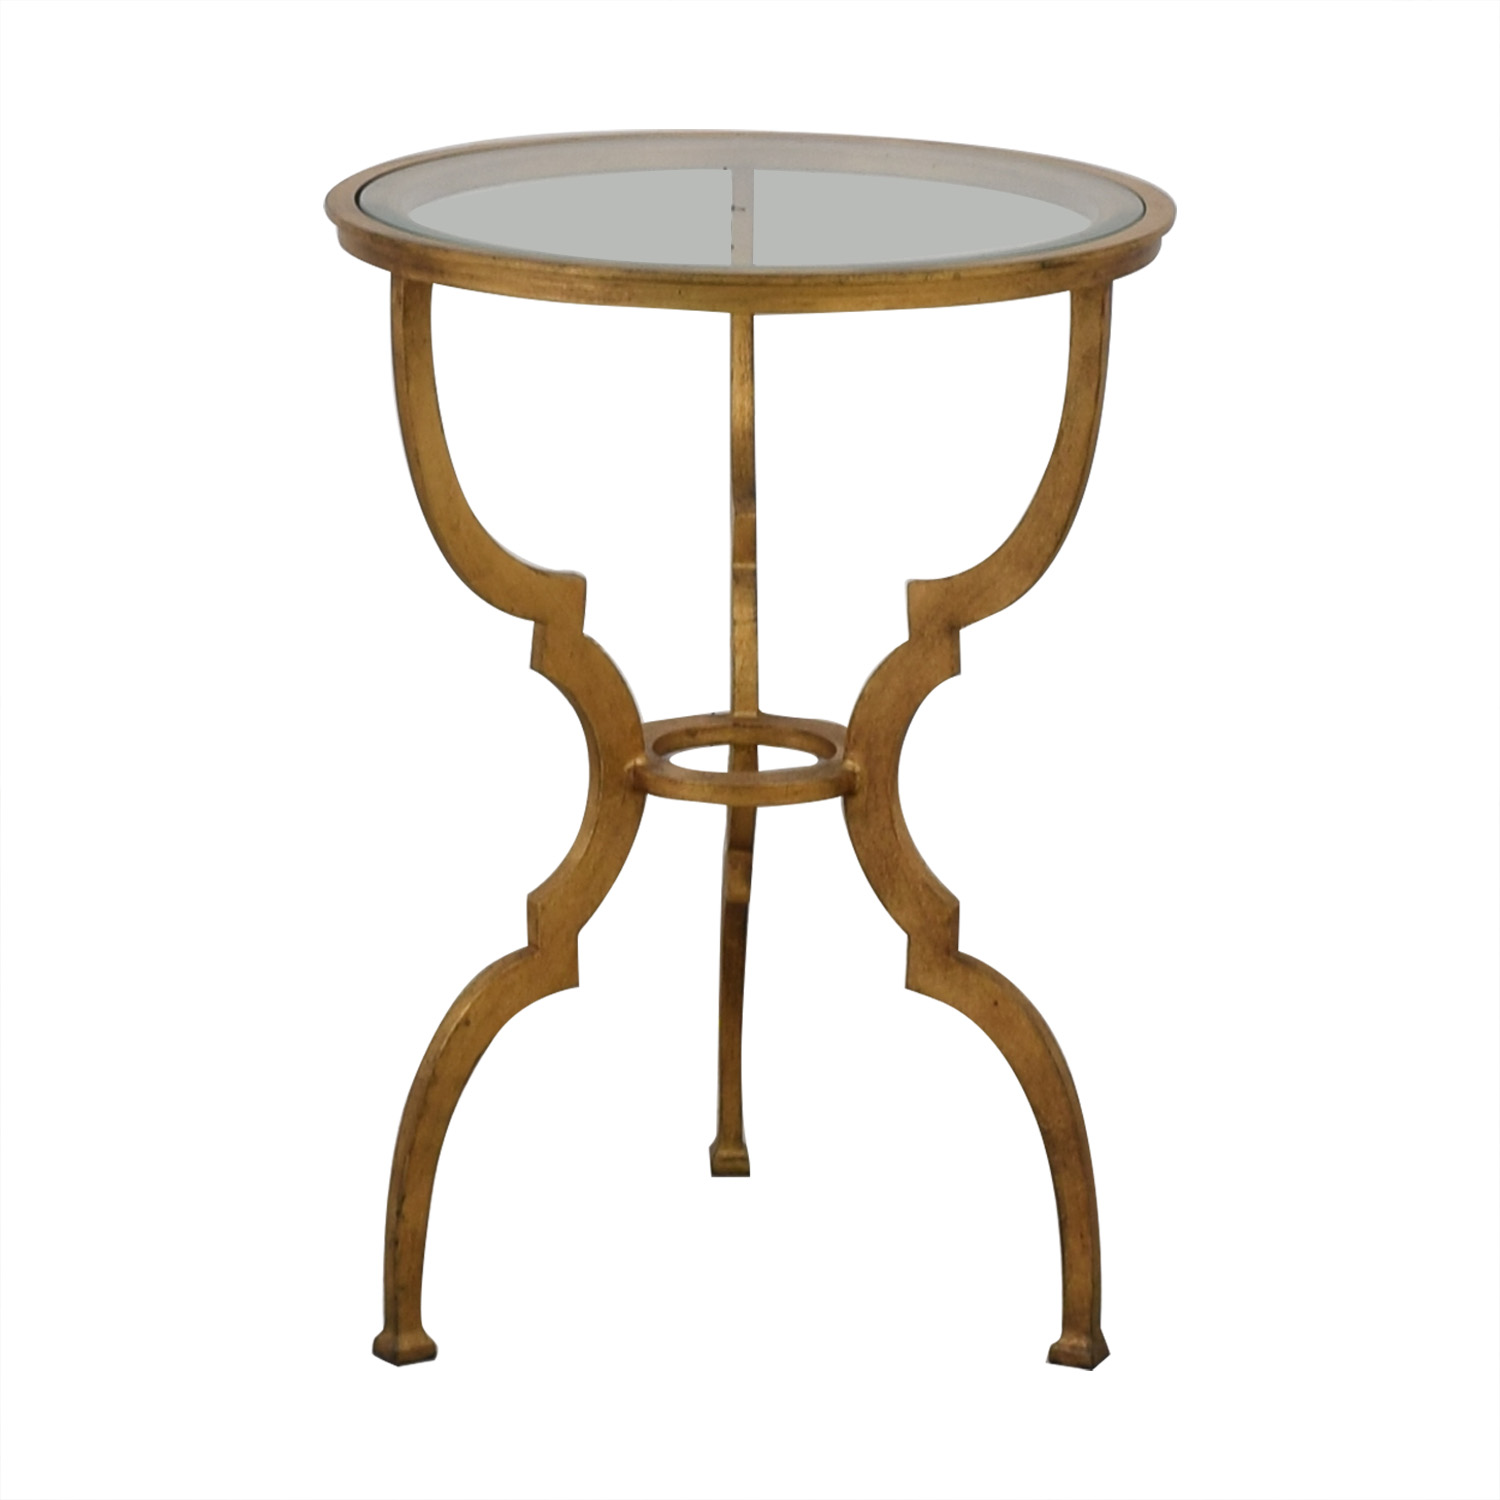 buy Ethan Allen Belle Table Ethan Allen Tables